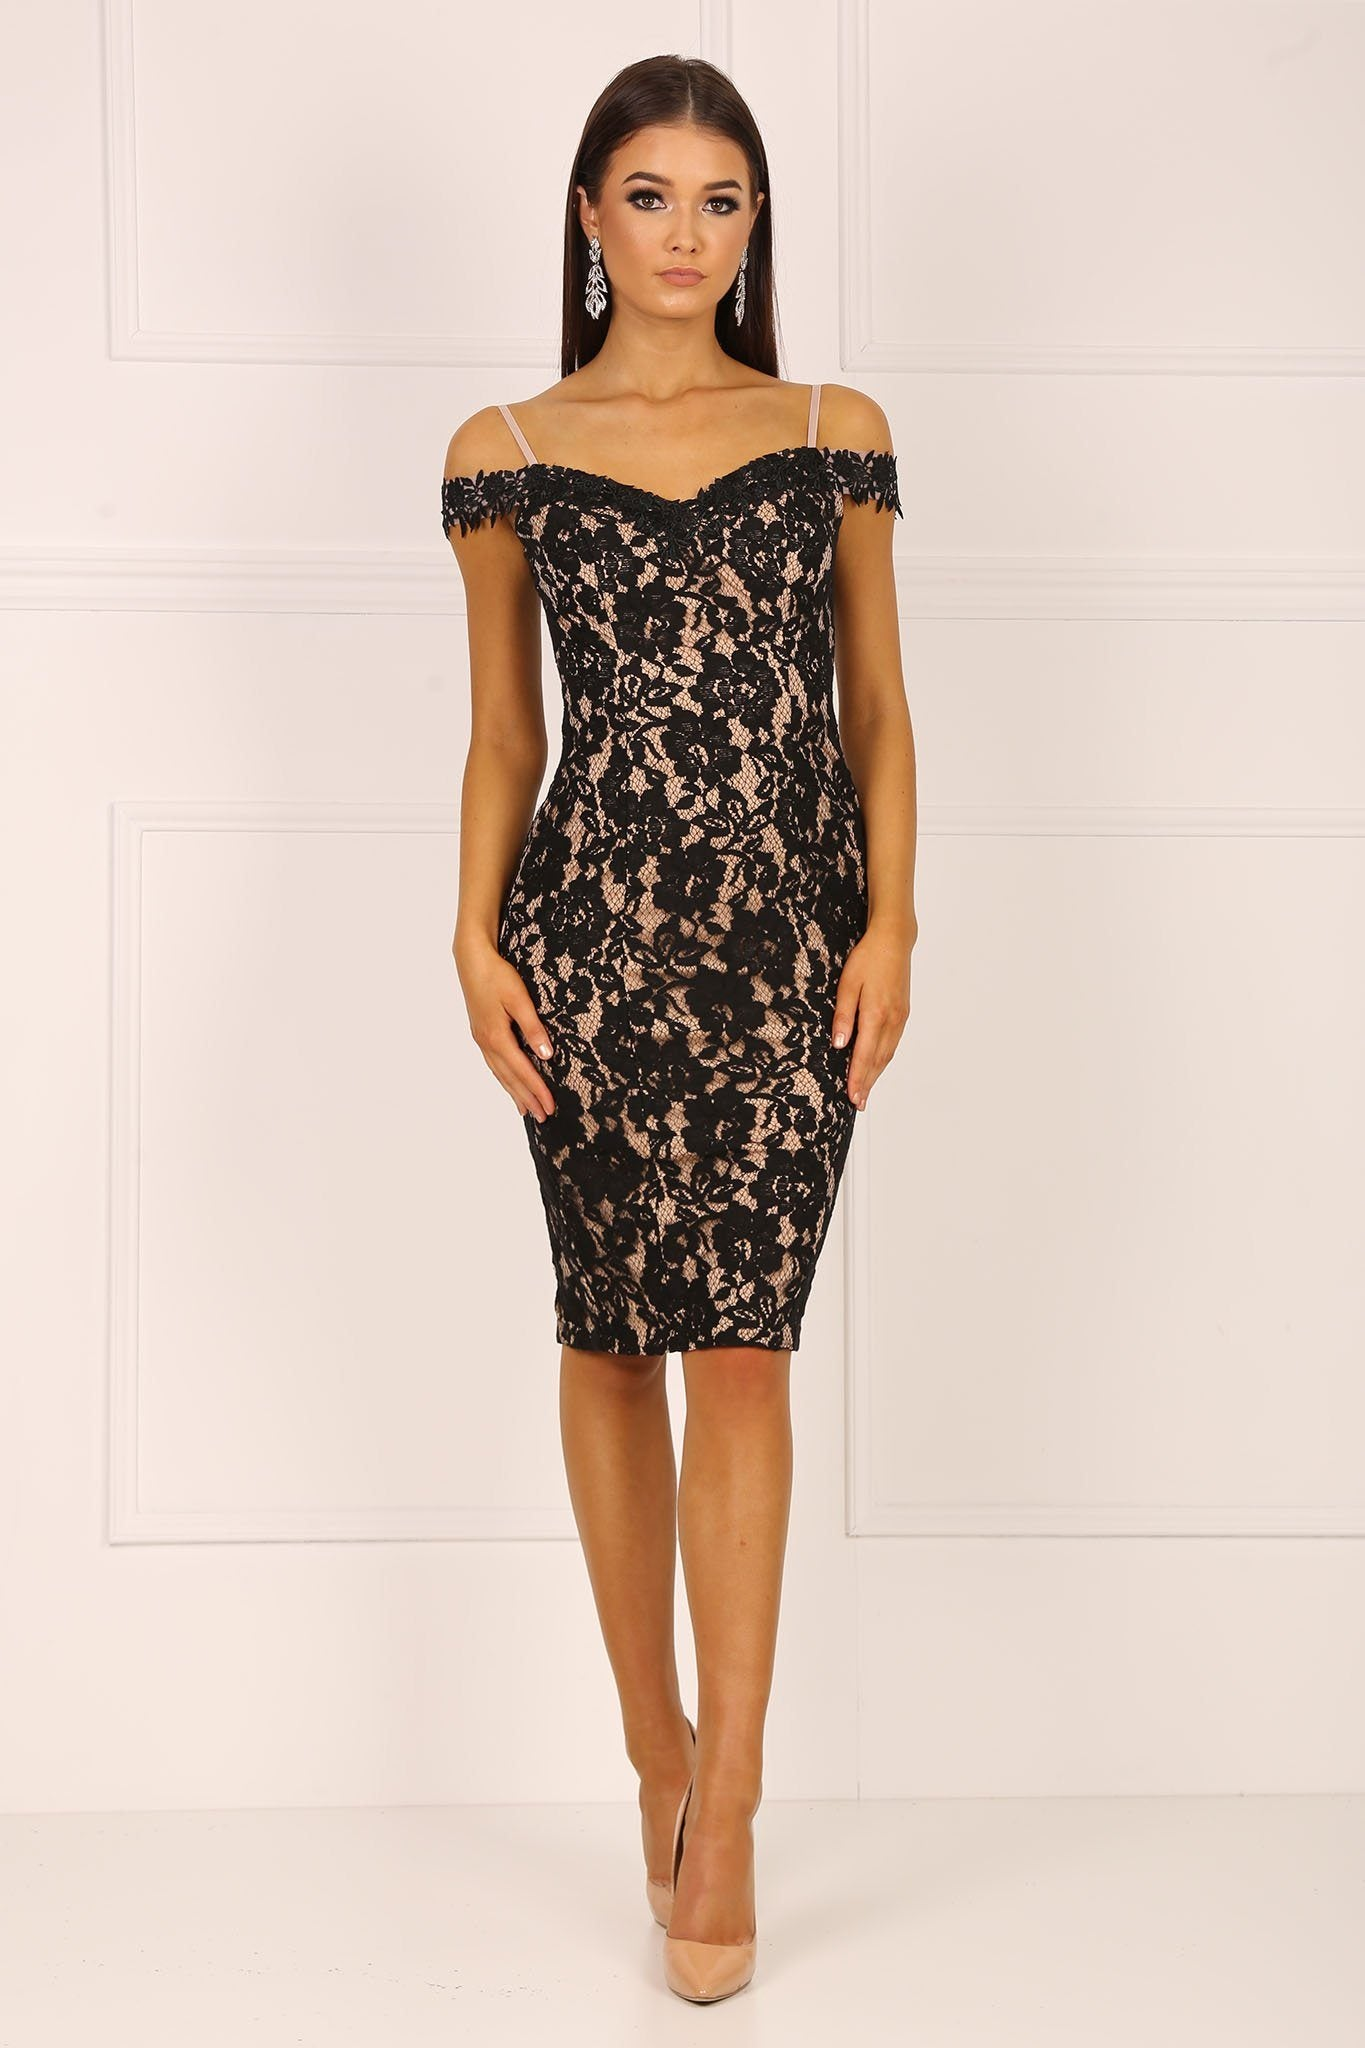 f046199f7 ... Black lace knee-length dress with beige nude illusion underlay, off the  shoulder design ...